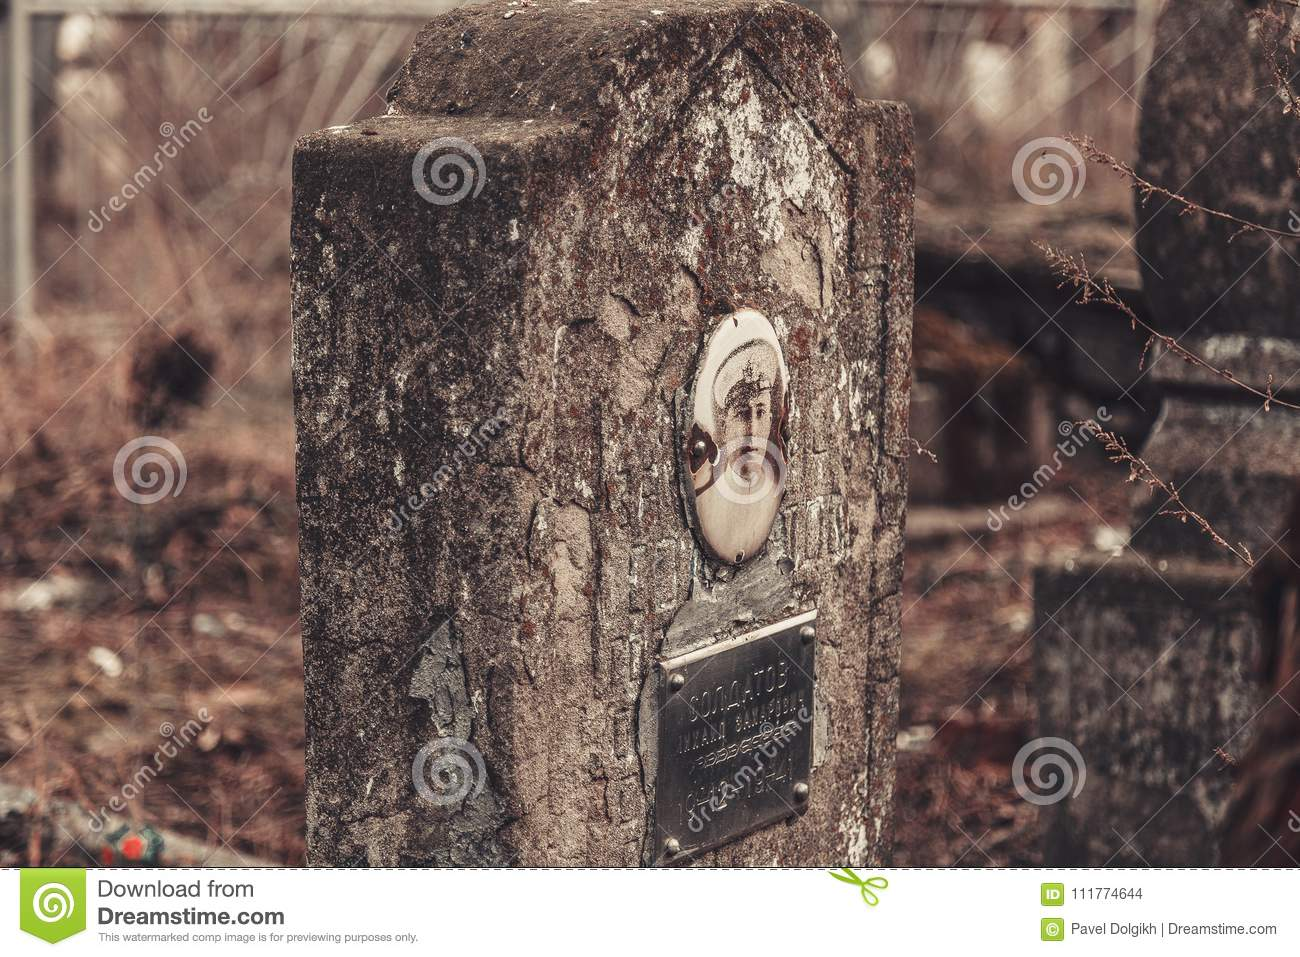 Ancient cemetery tombstones monuments of angels mysticism mystery ghost spirits bring death